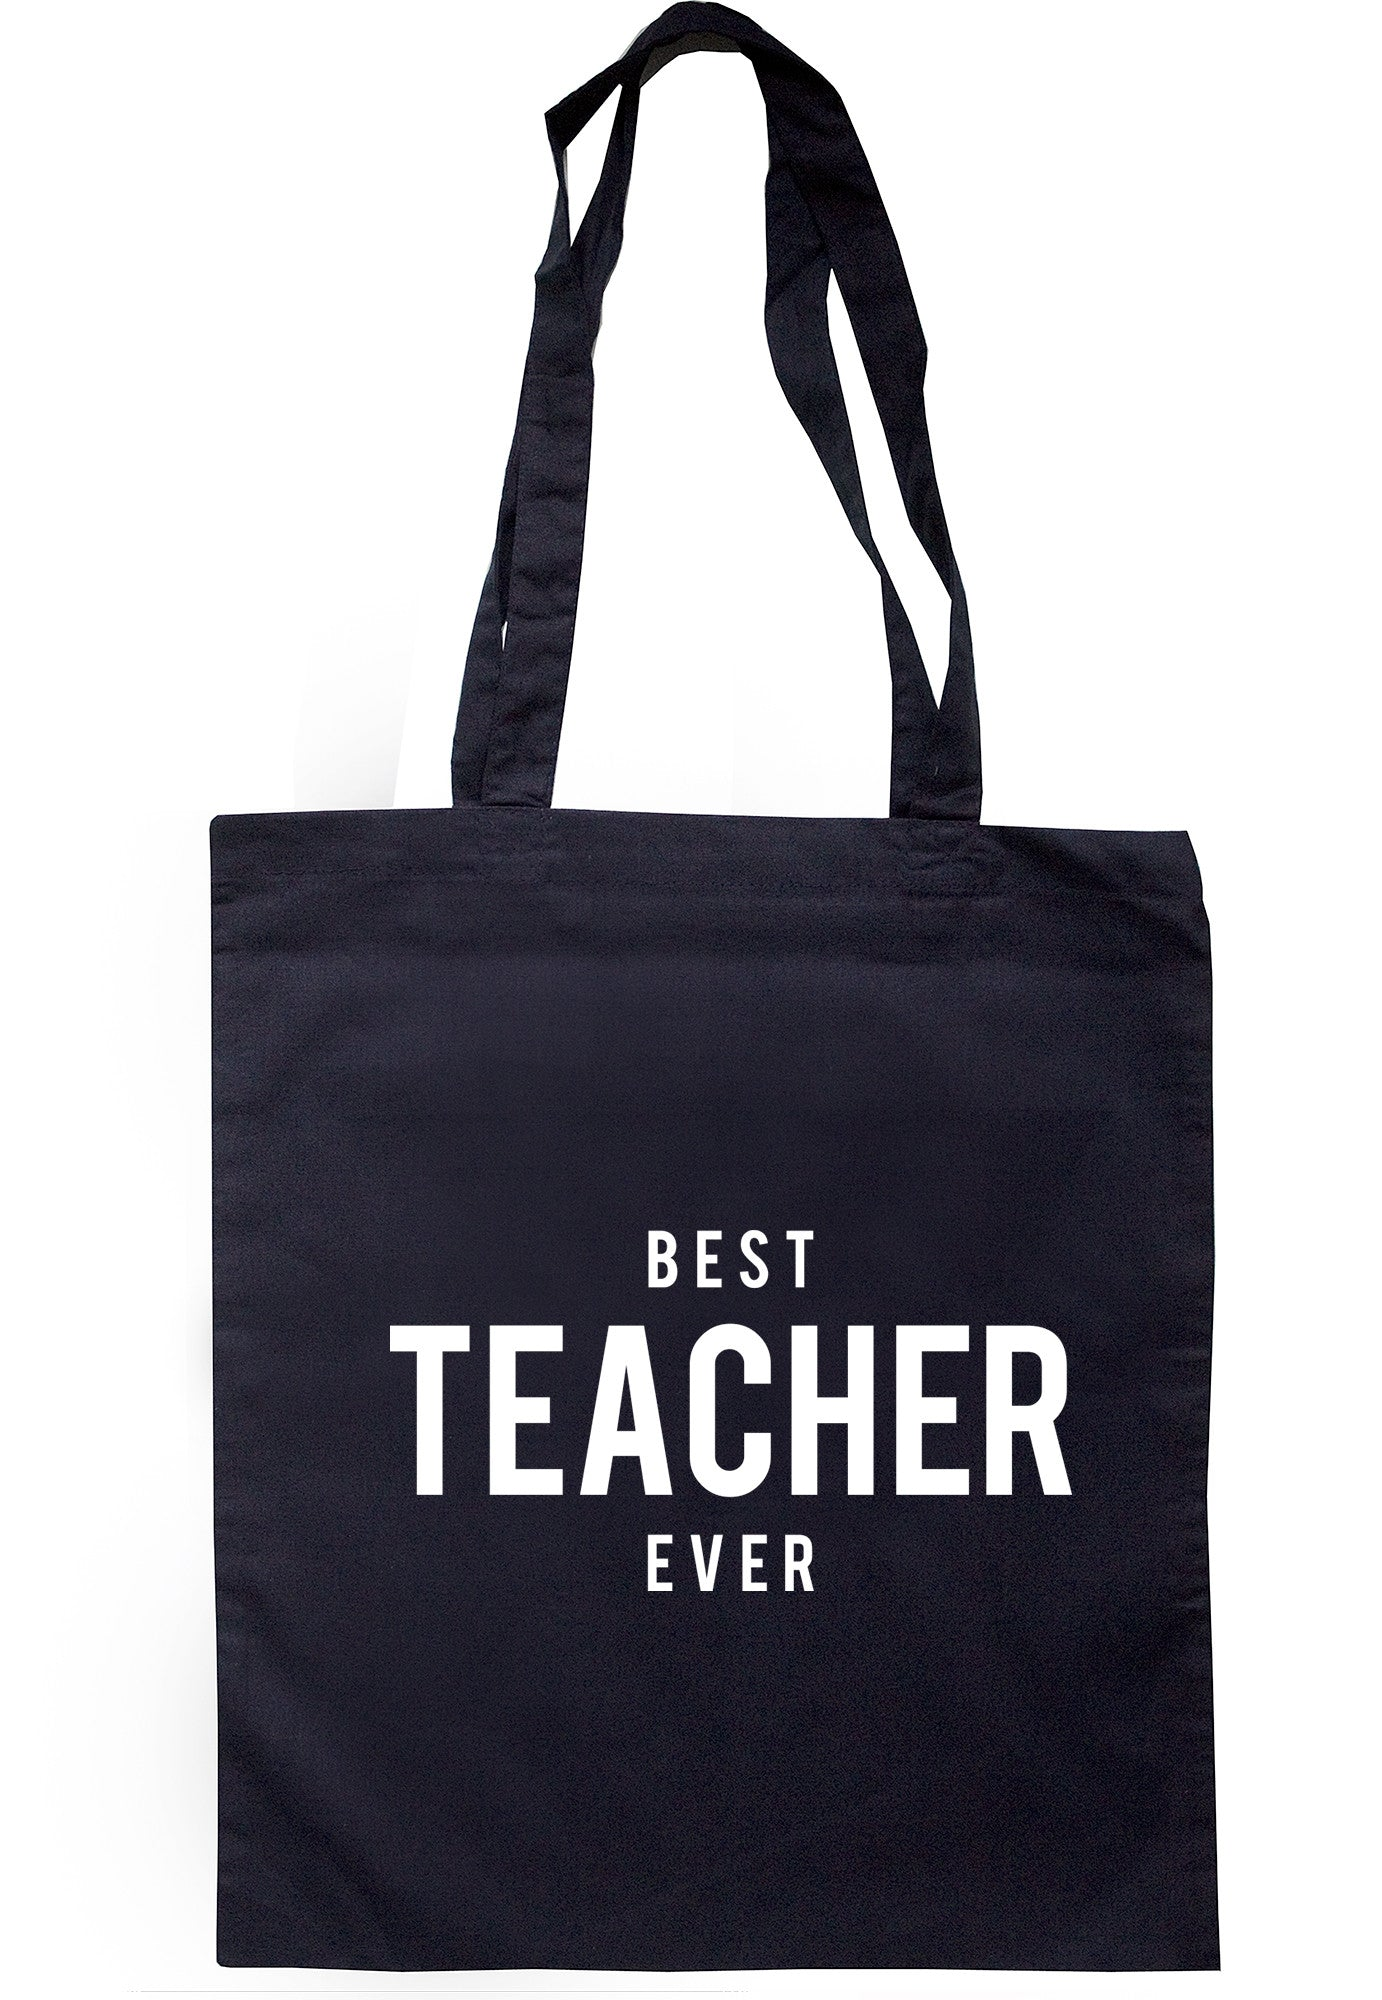 Best Teacher Ever Tote Bag TB1310